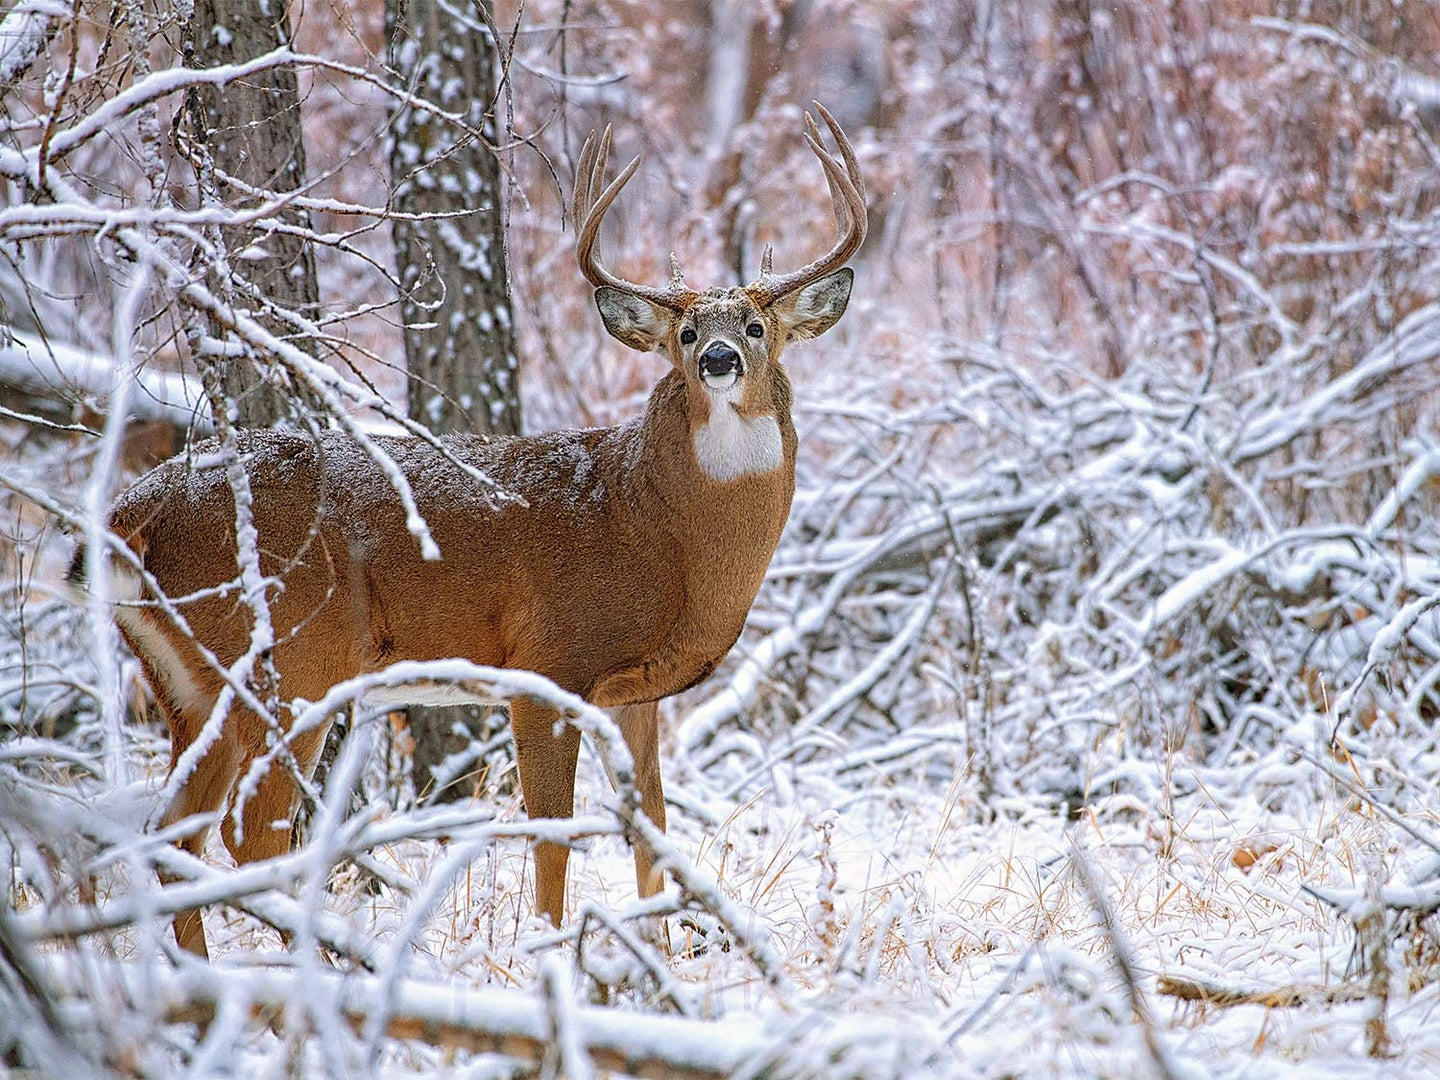 A whitetail buck walking through a snow-covered forest.